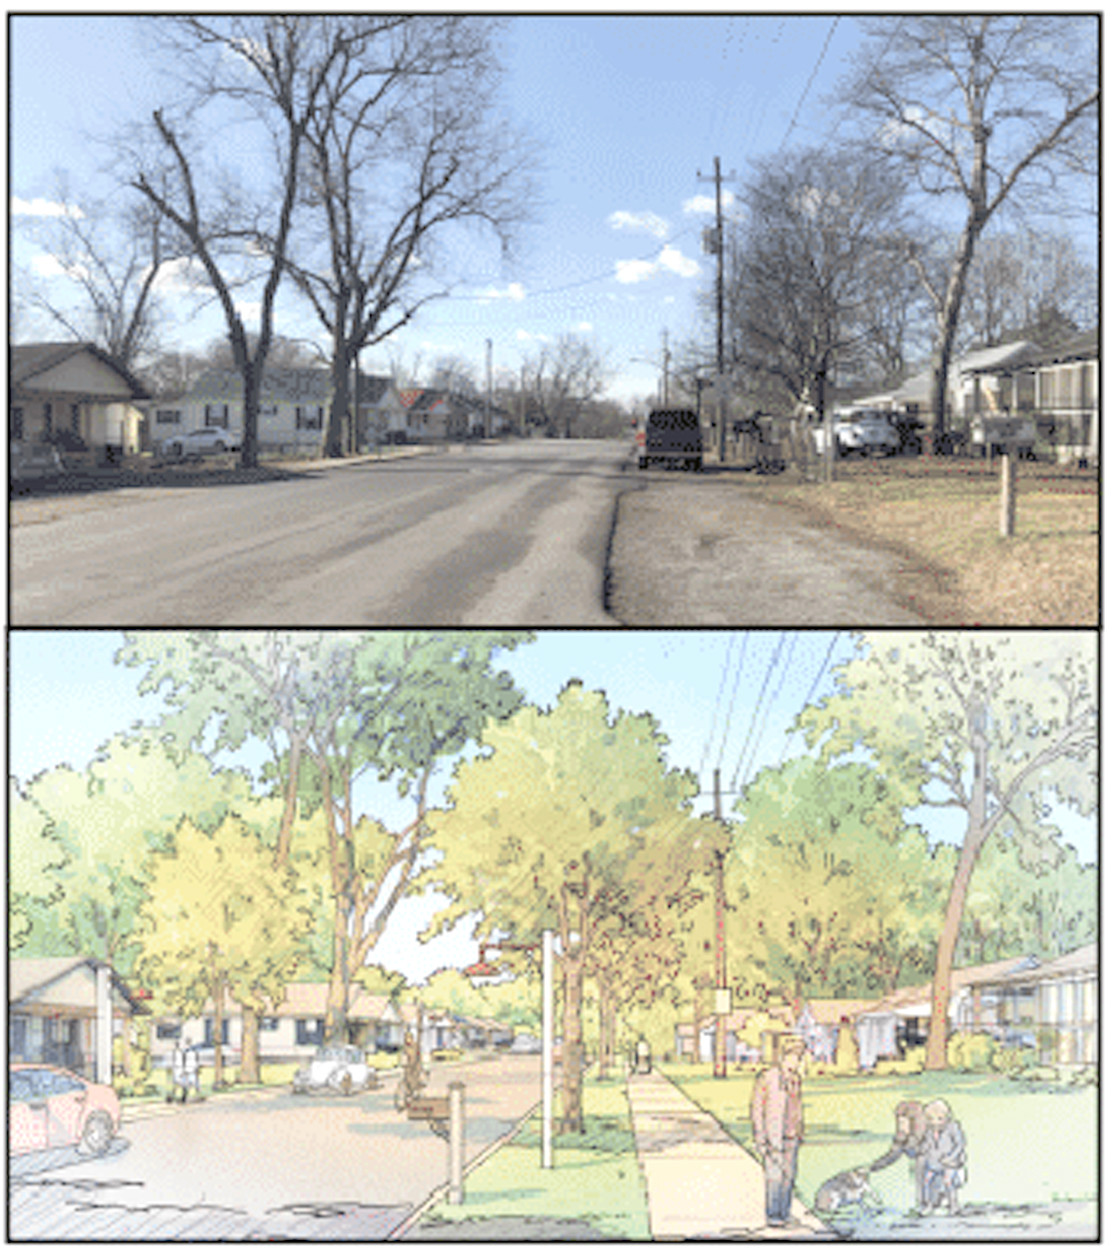 THIS ILLUSTRATION shows how a new streetscape along Blythe Avenue could look in the Blythe-Oldfield community. This is a conceptual design presented by City Fields Executive Director Dustin Tommey.